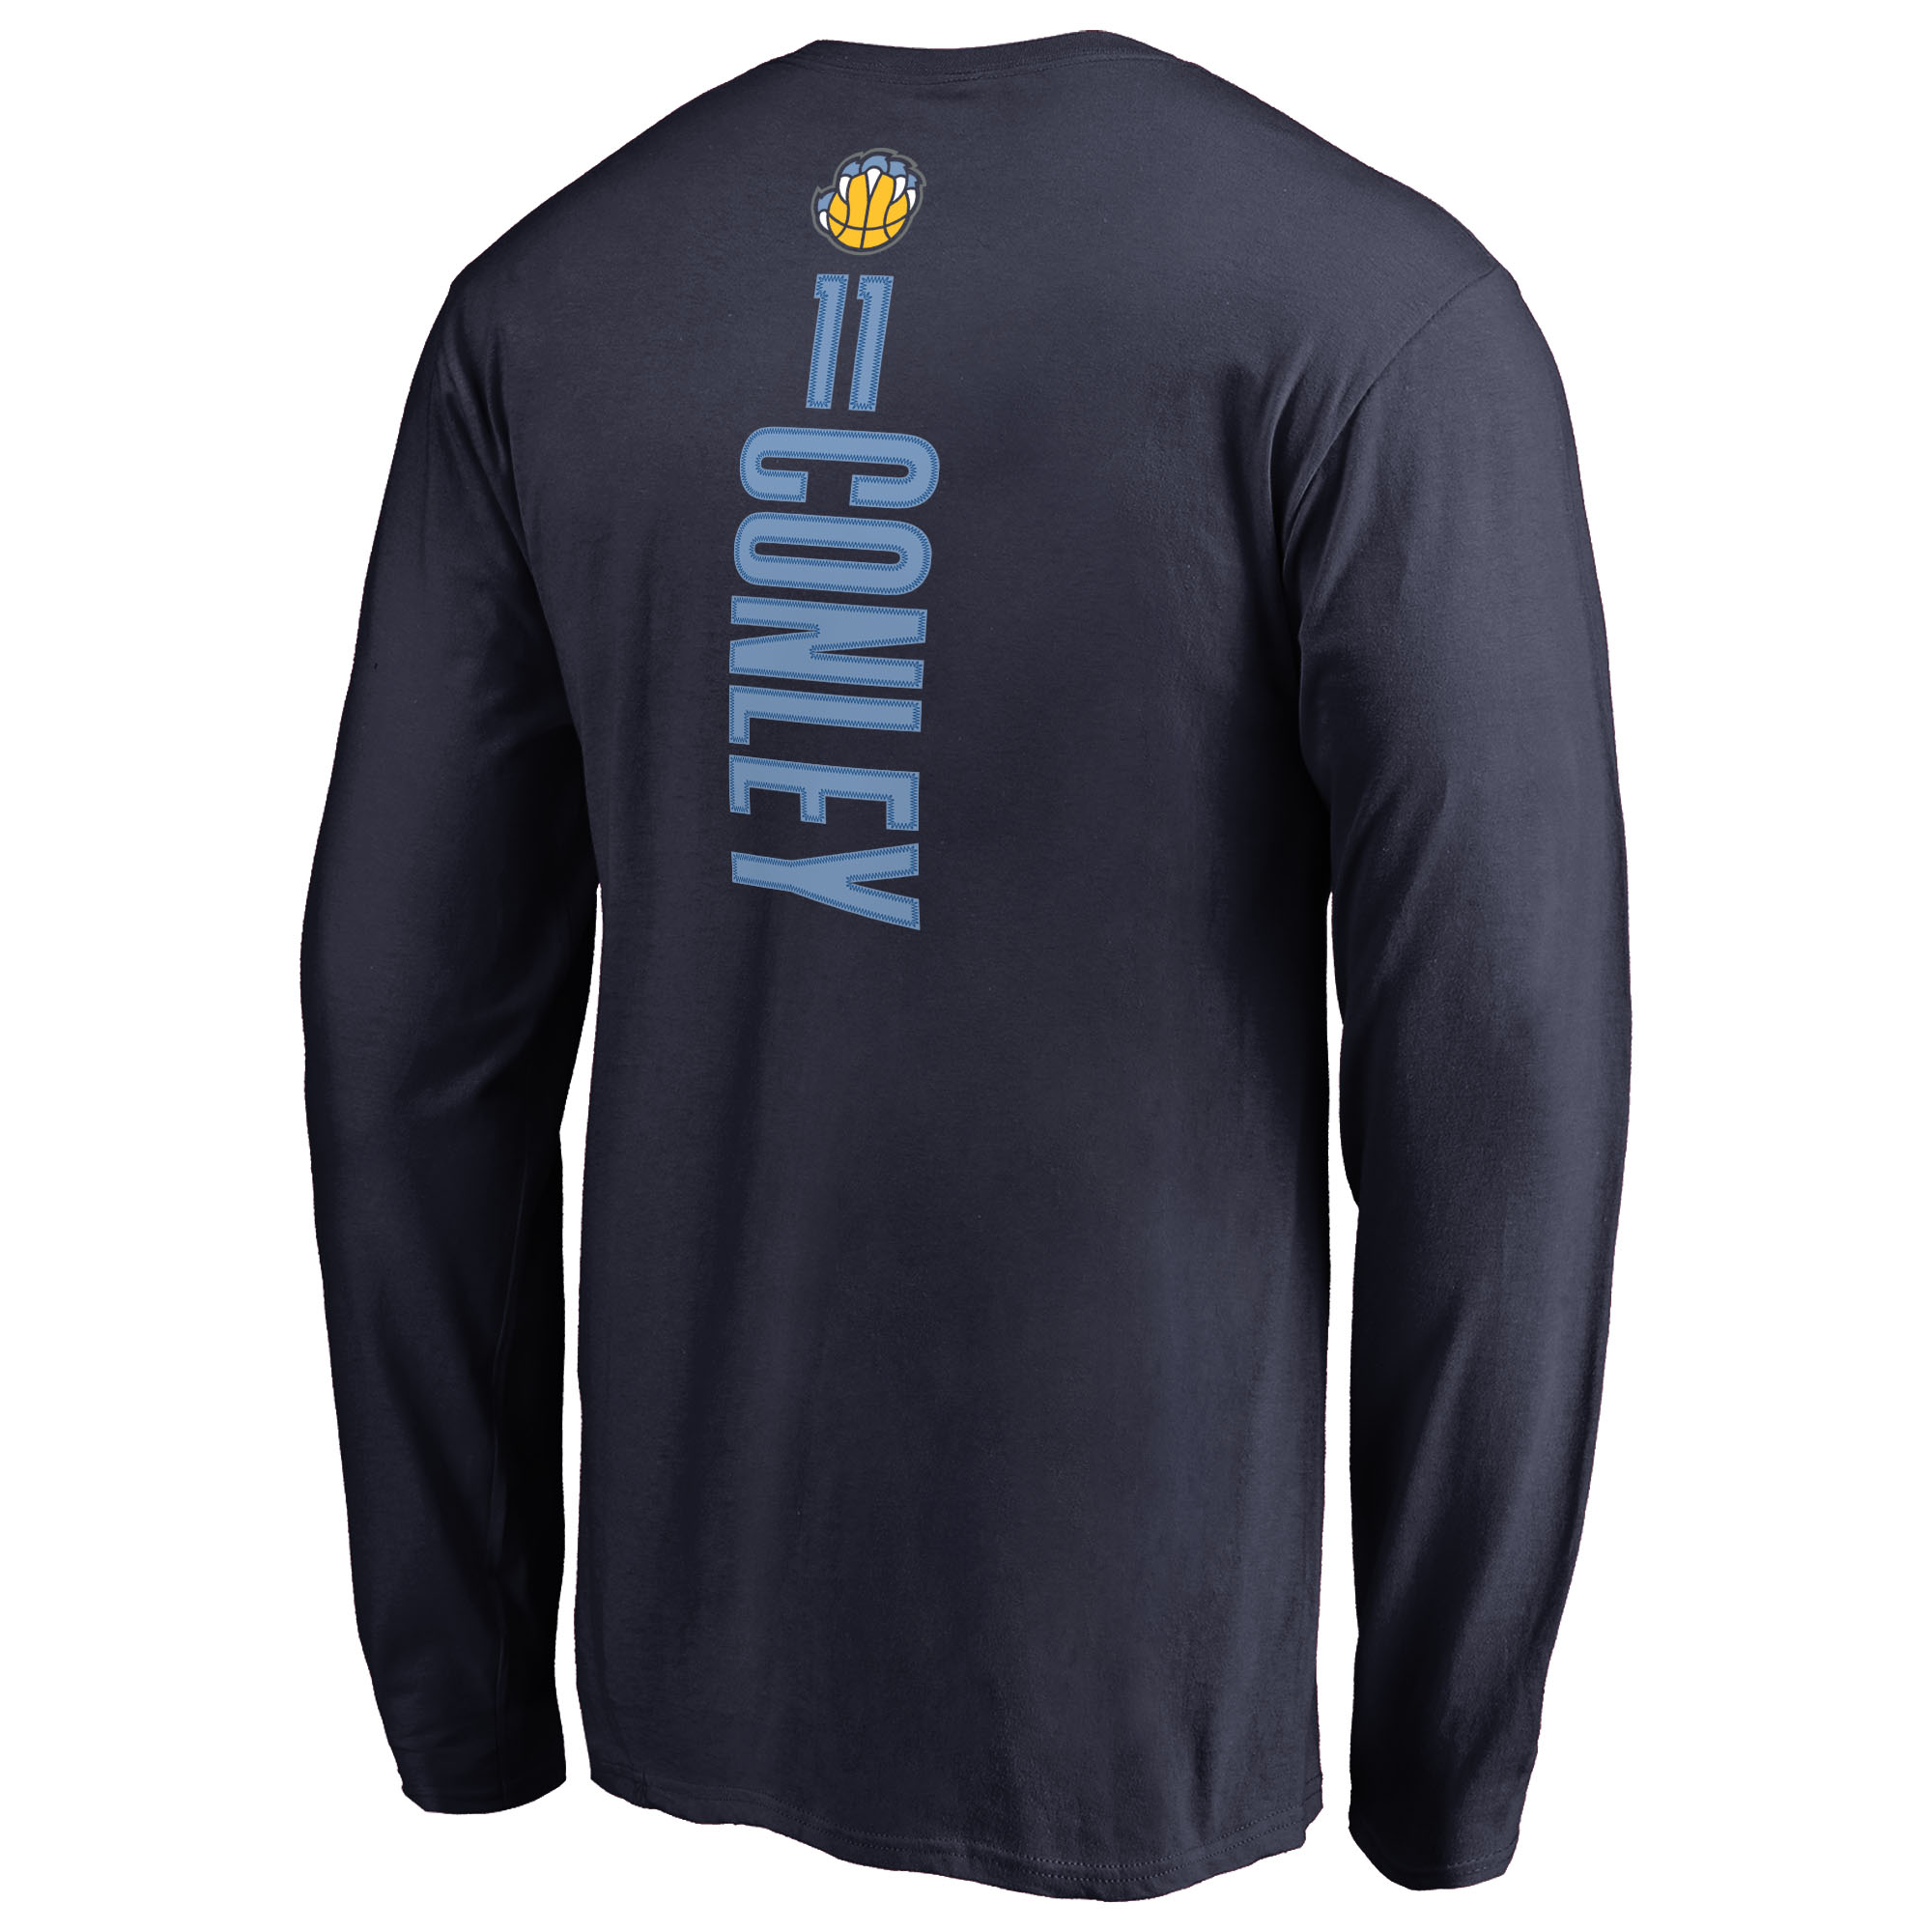 c2a4278ee05b Mike Conley Memphis Grizzlies Backer Long Sleeve T-Shirt - Navy -  Walmart.com